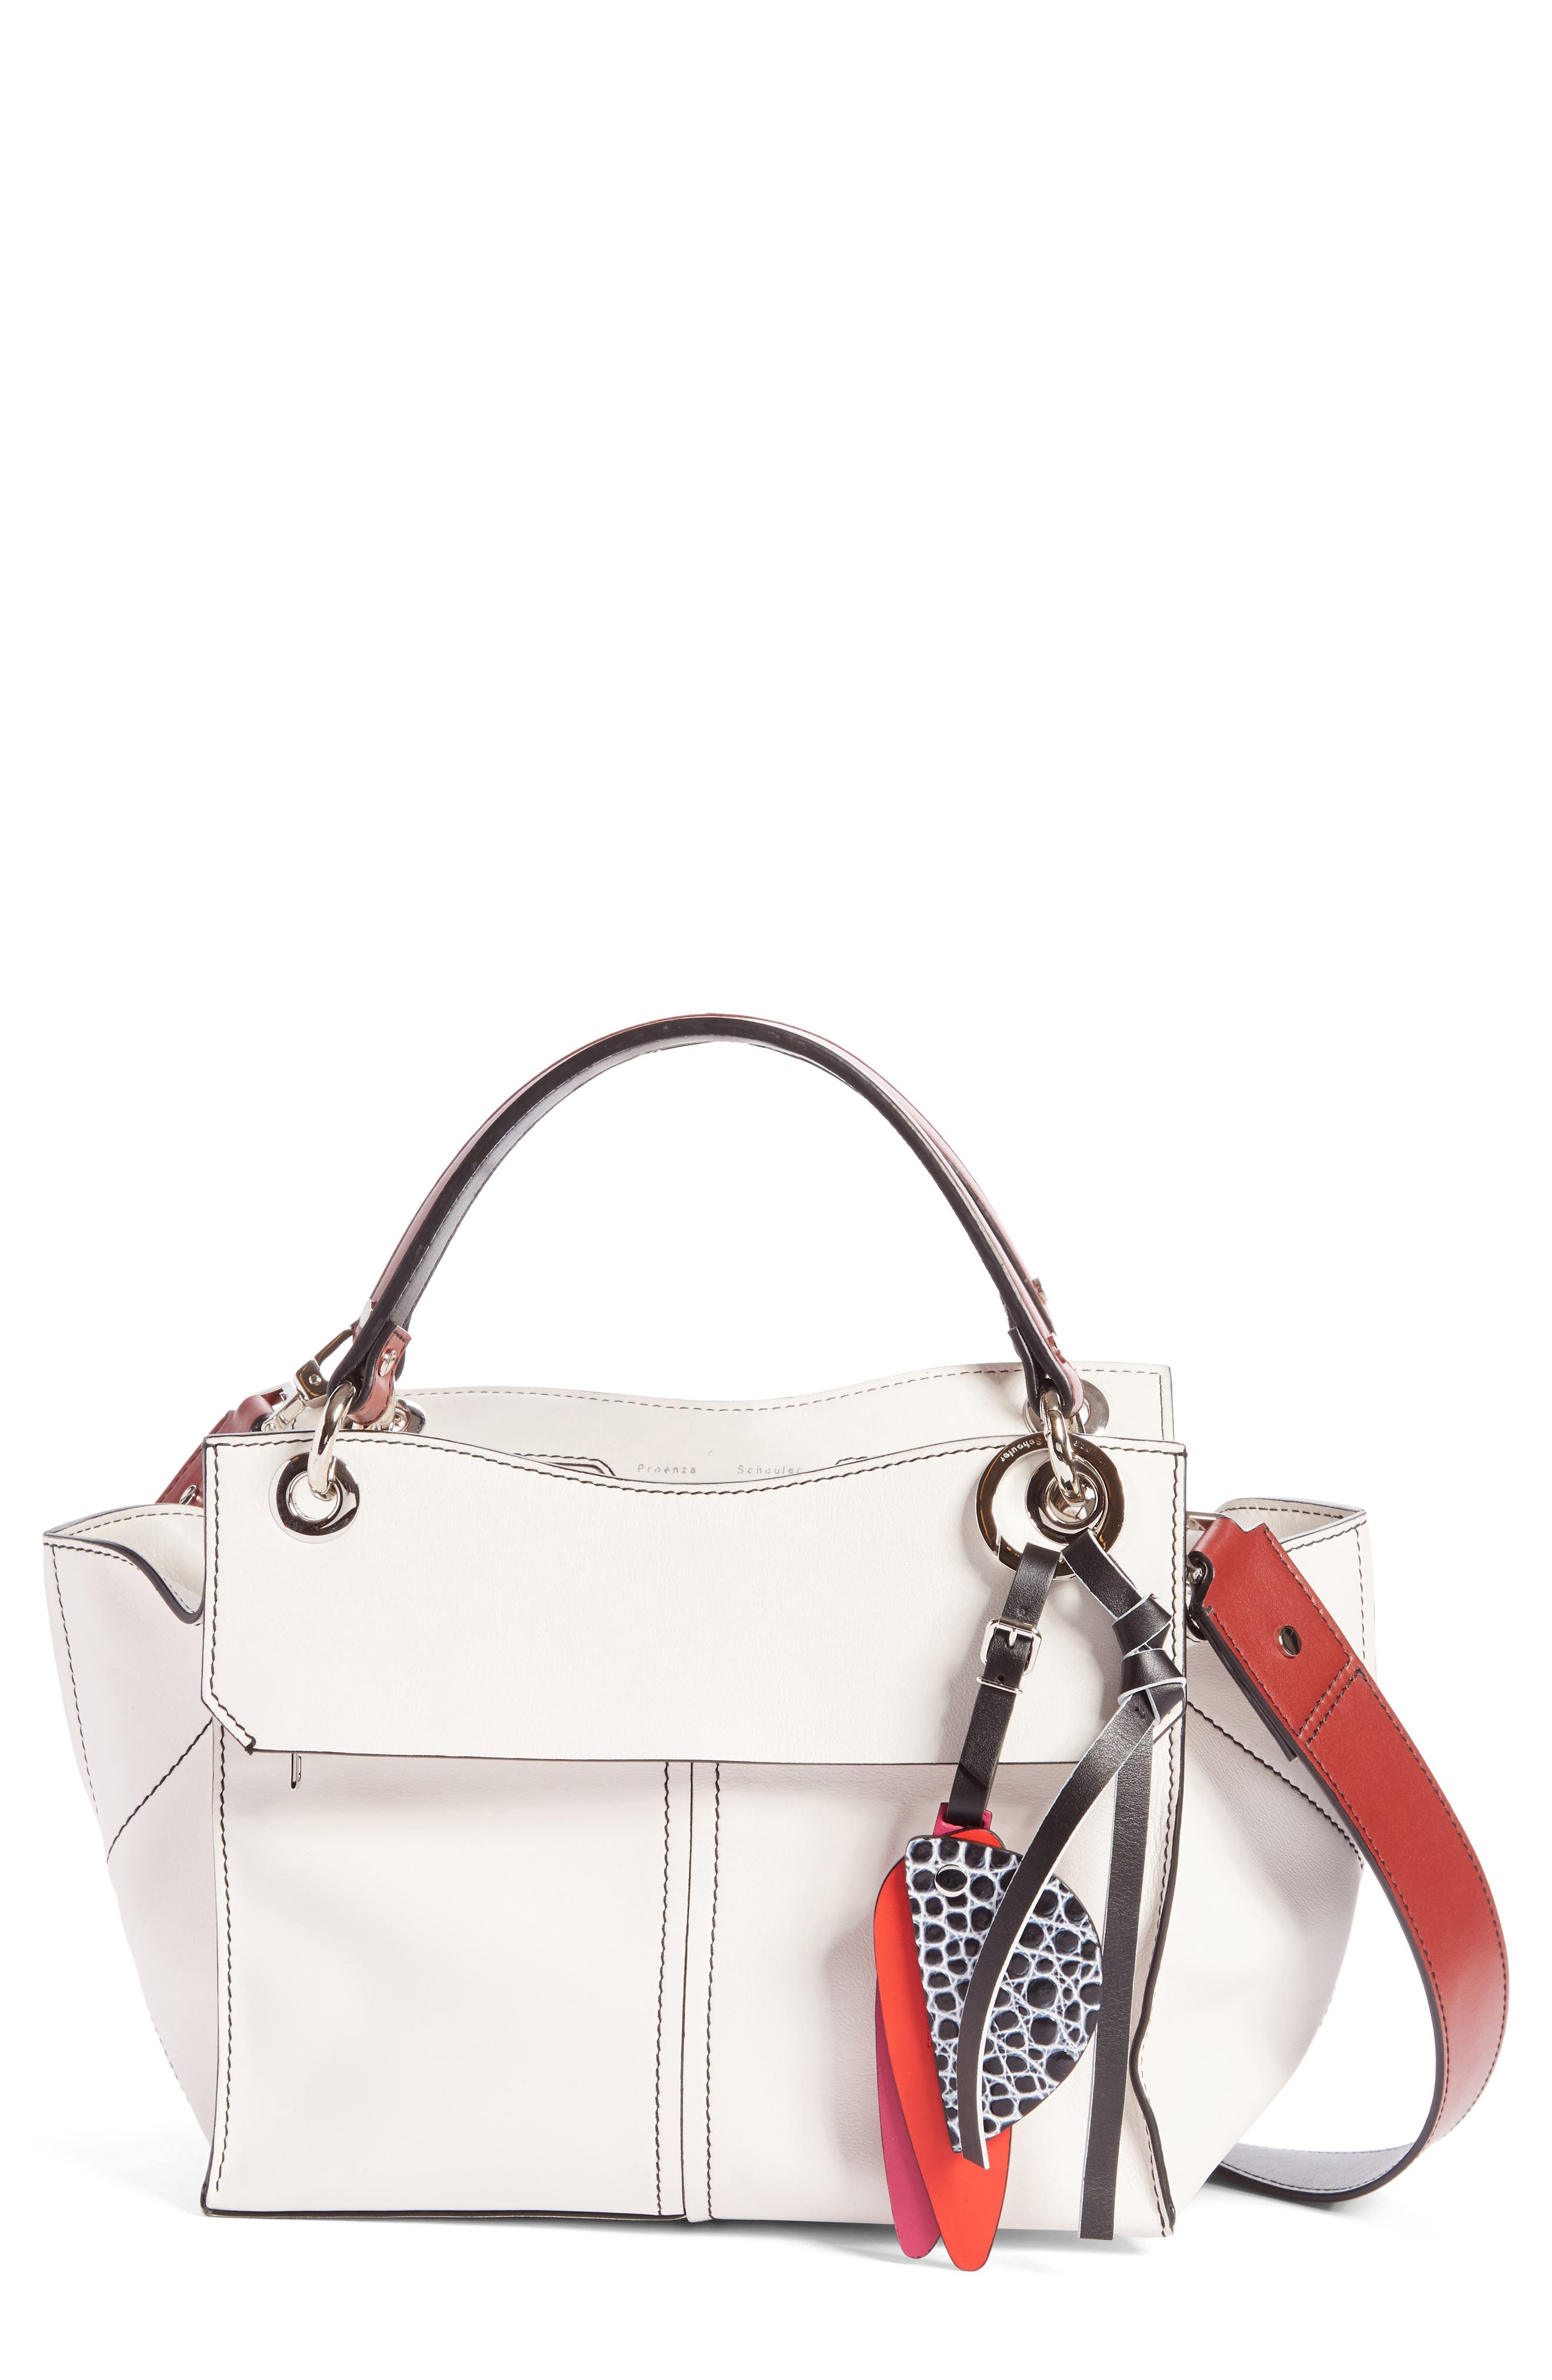 Main Image - Proenza Schouler Curl Leather Shoulder Bag